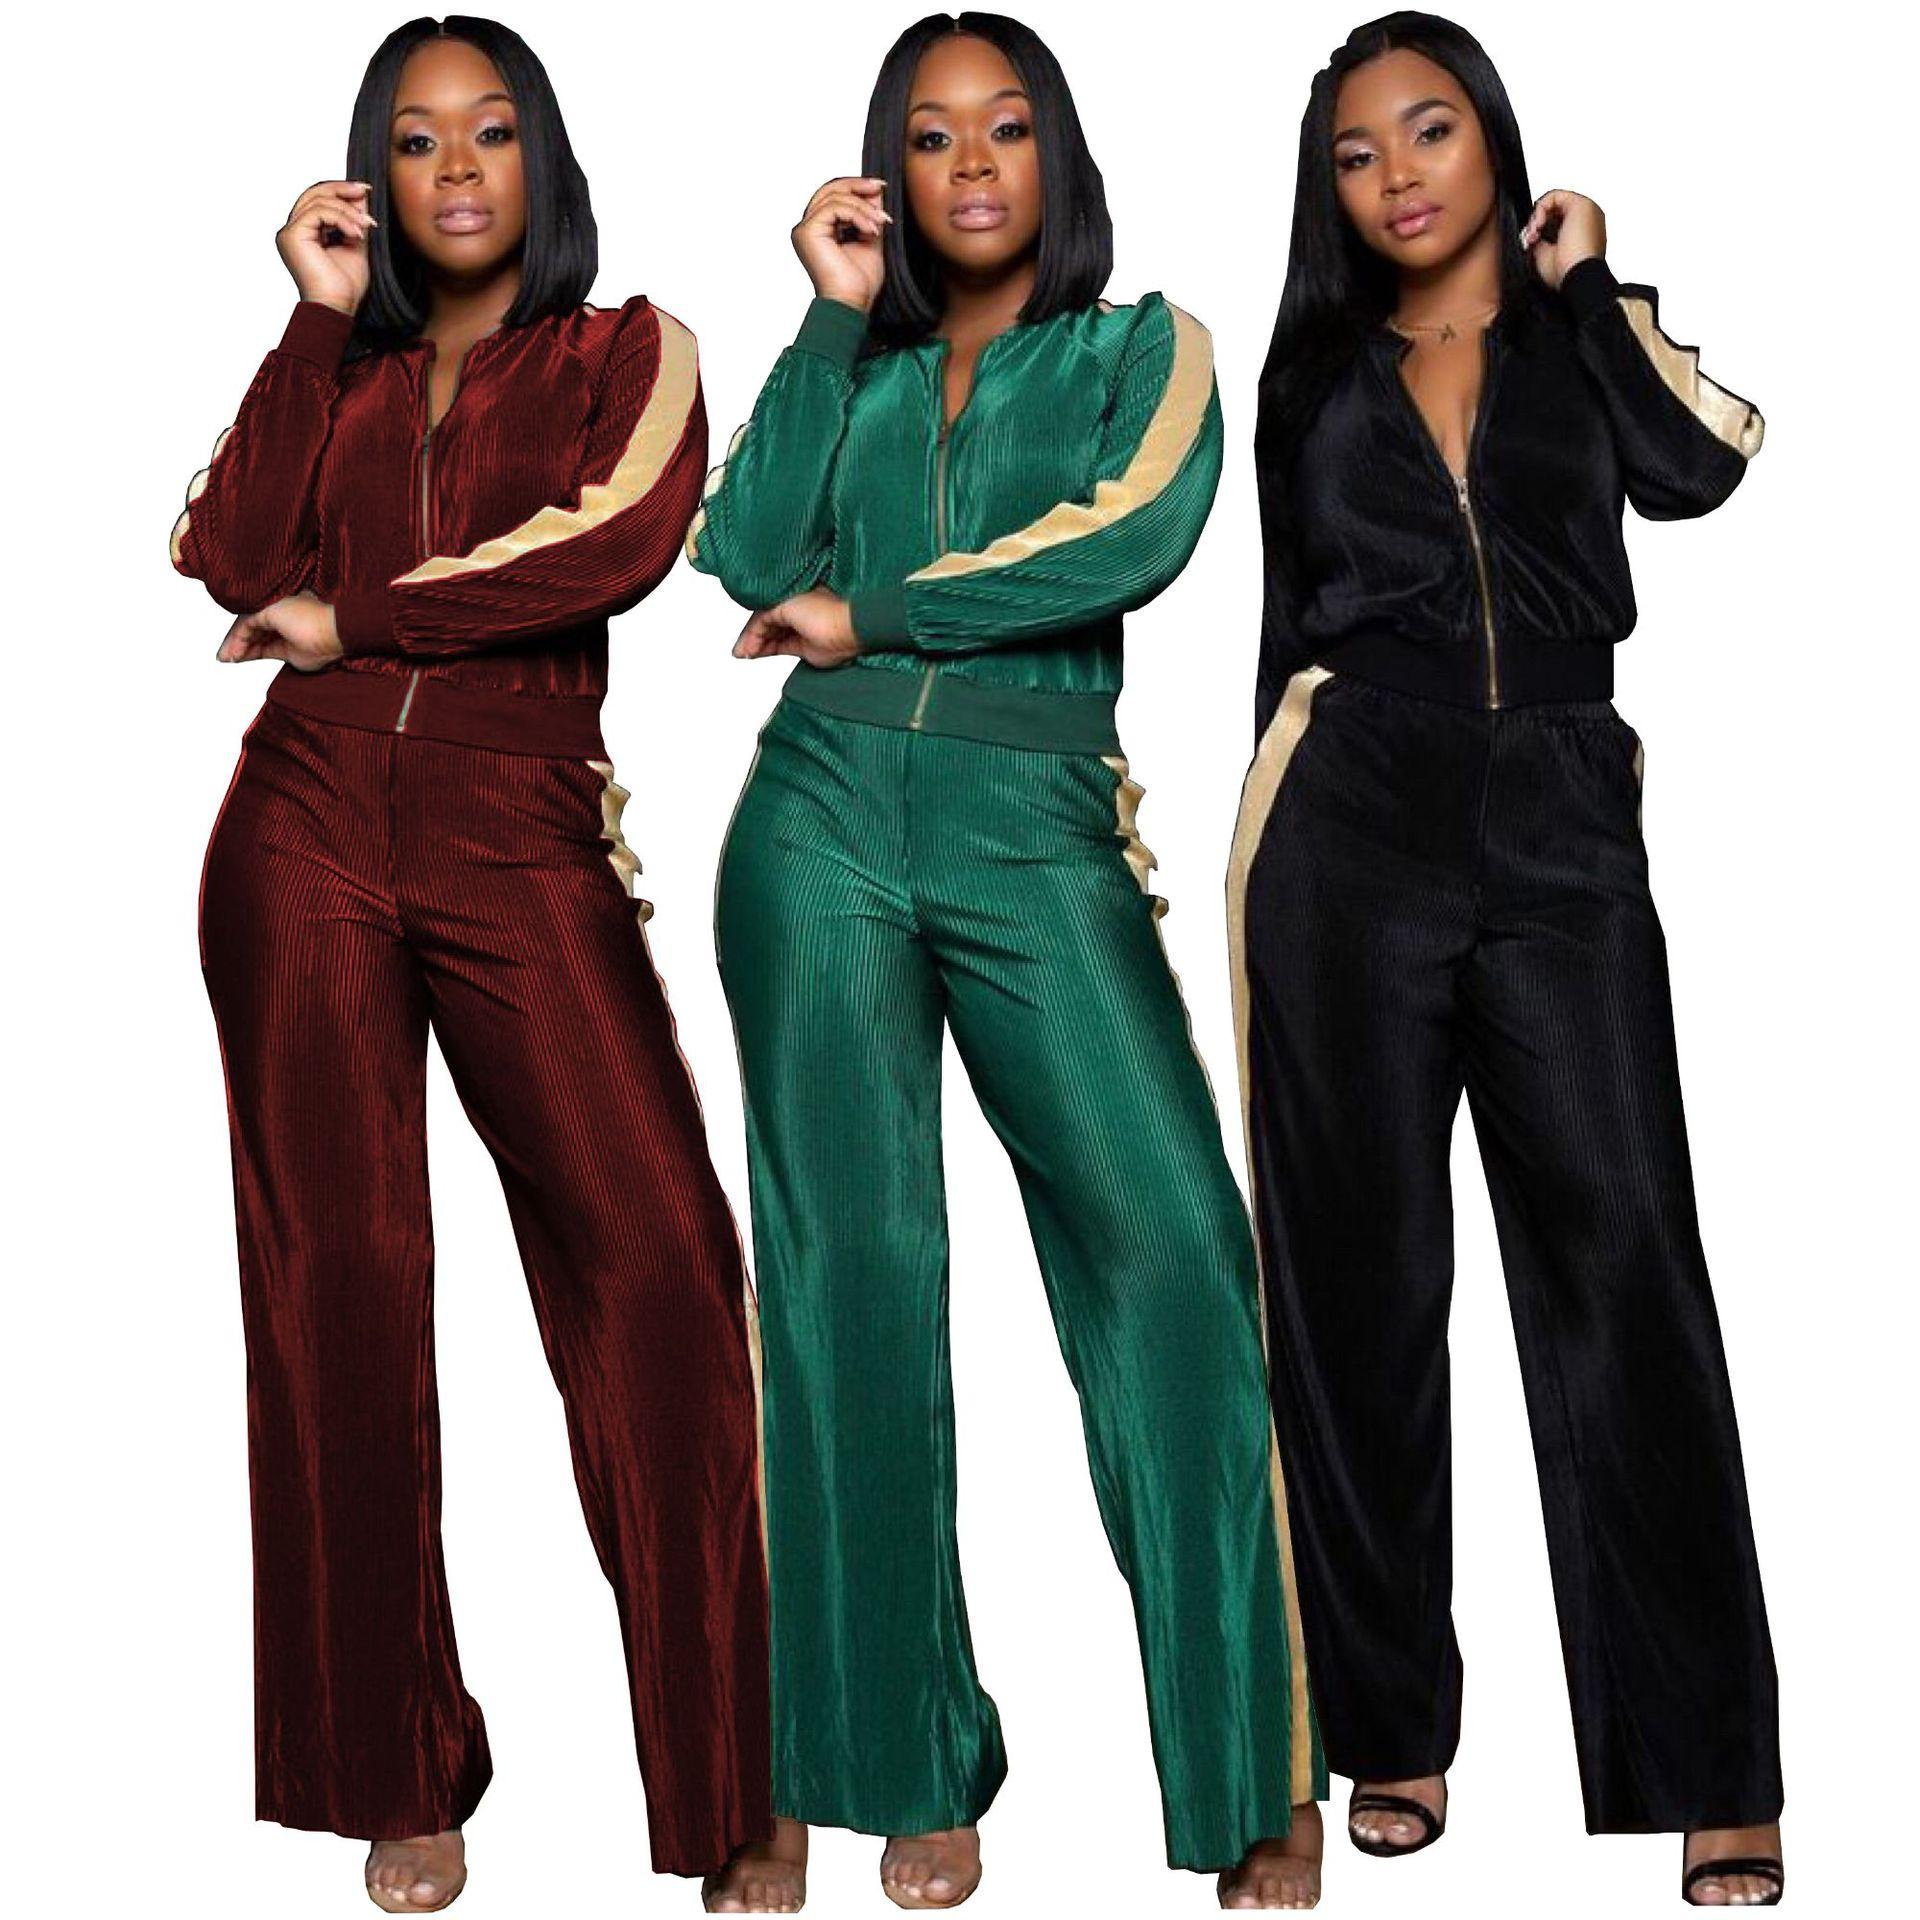 f3eb8671e16 2019 Velvet Set 2018 Winter Women Warm Tracksuits Zipper Neck Striped  Active Outfits Wide Leg Outdoor Sports Pants Suits Jog Track Suit From  Hengytrade